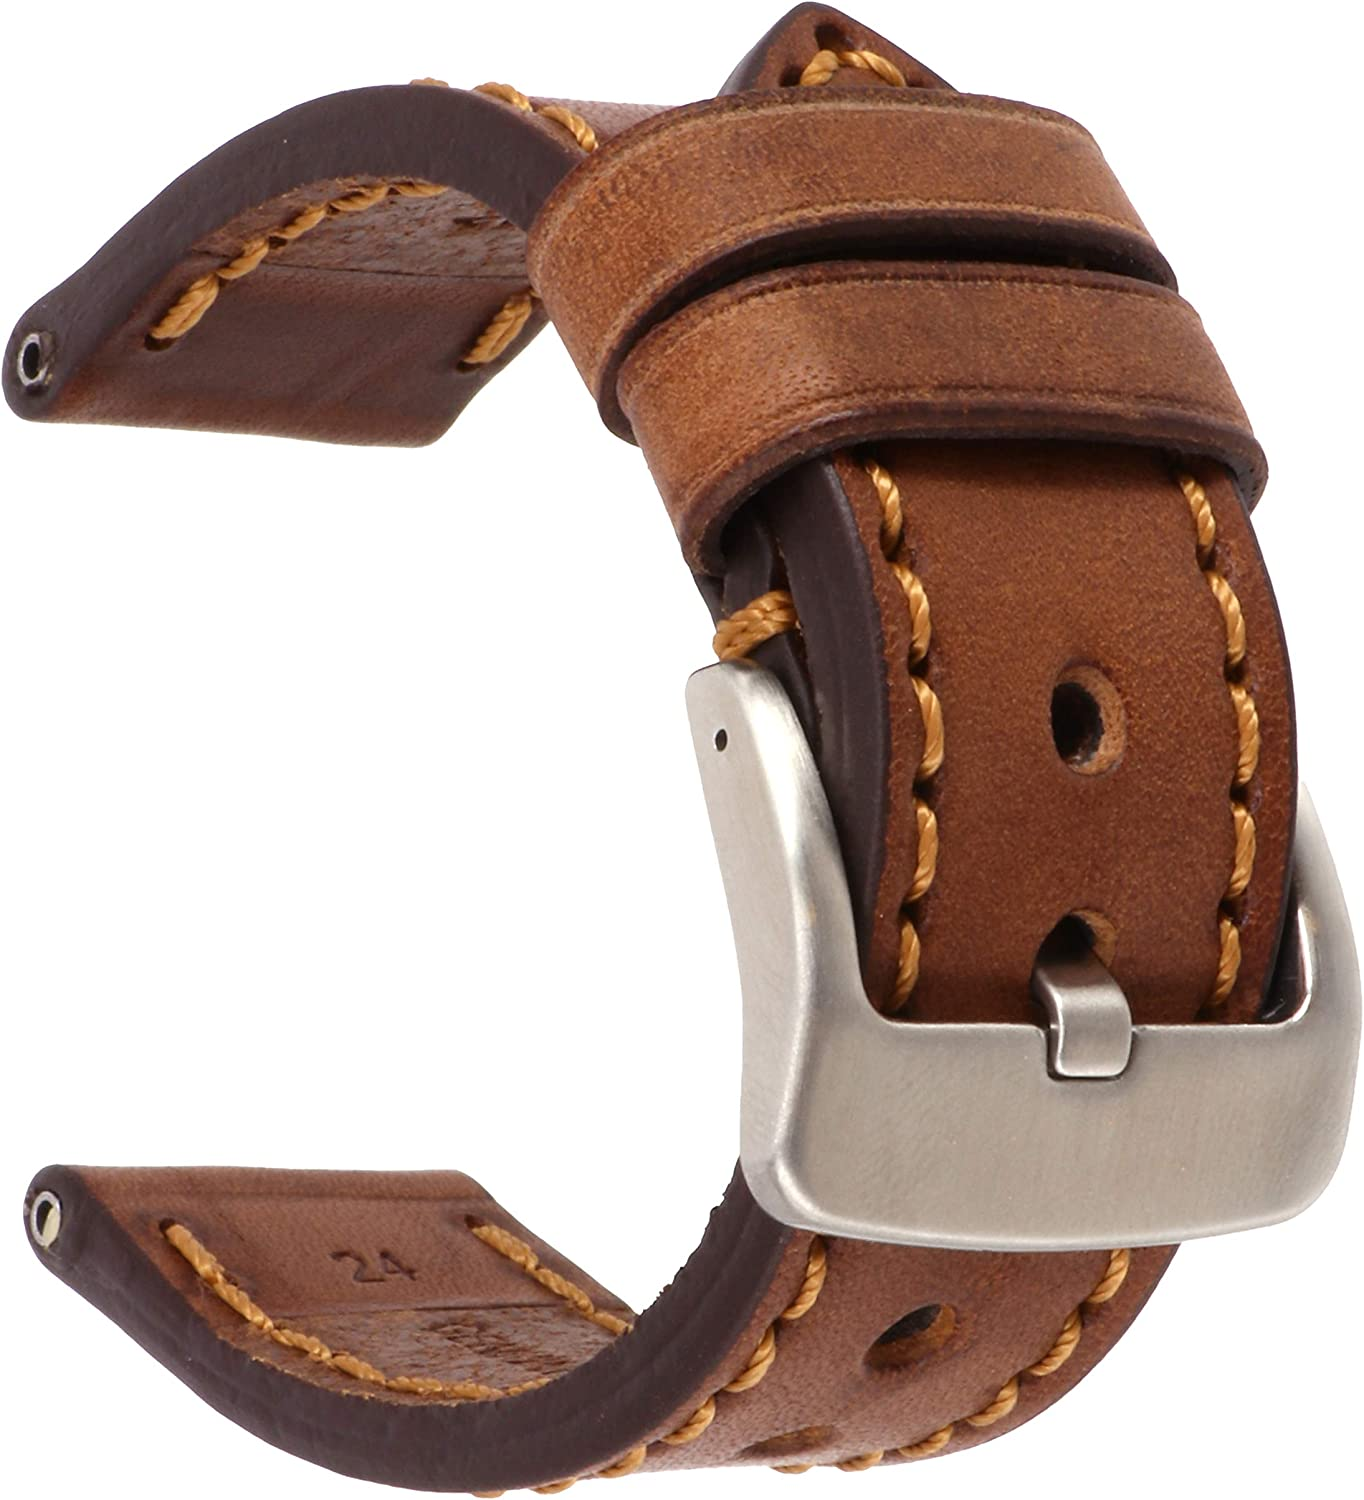 24mm Soft Cow Leather Strap Brown Watch New arrival Washington Mall Band Thick Hand S Copper